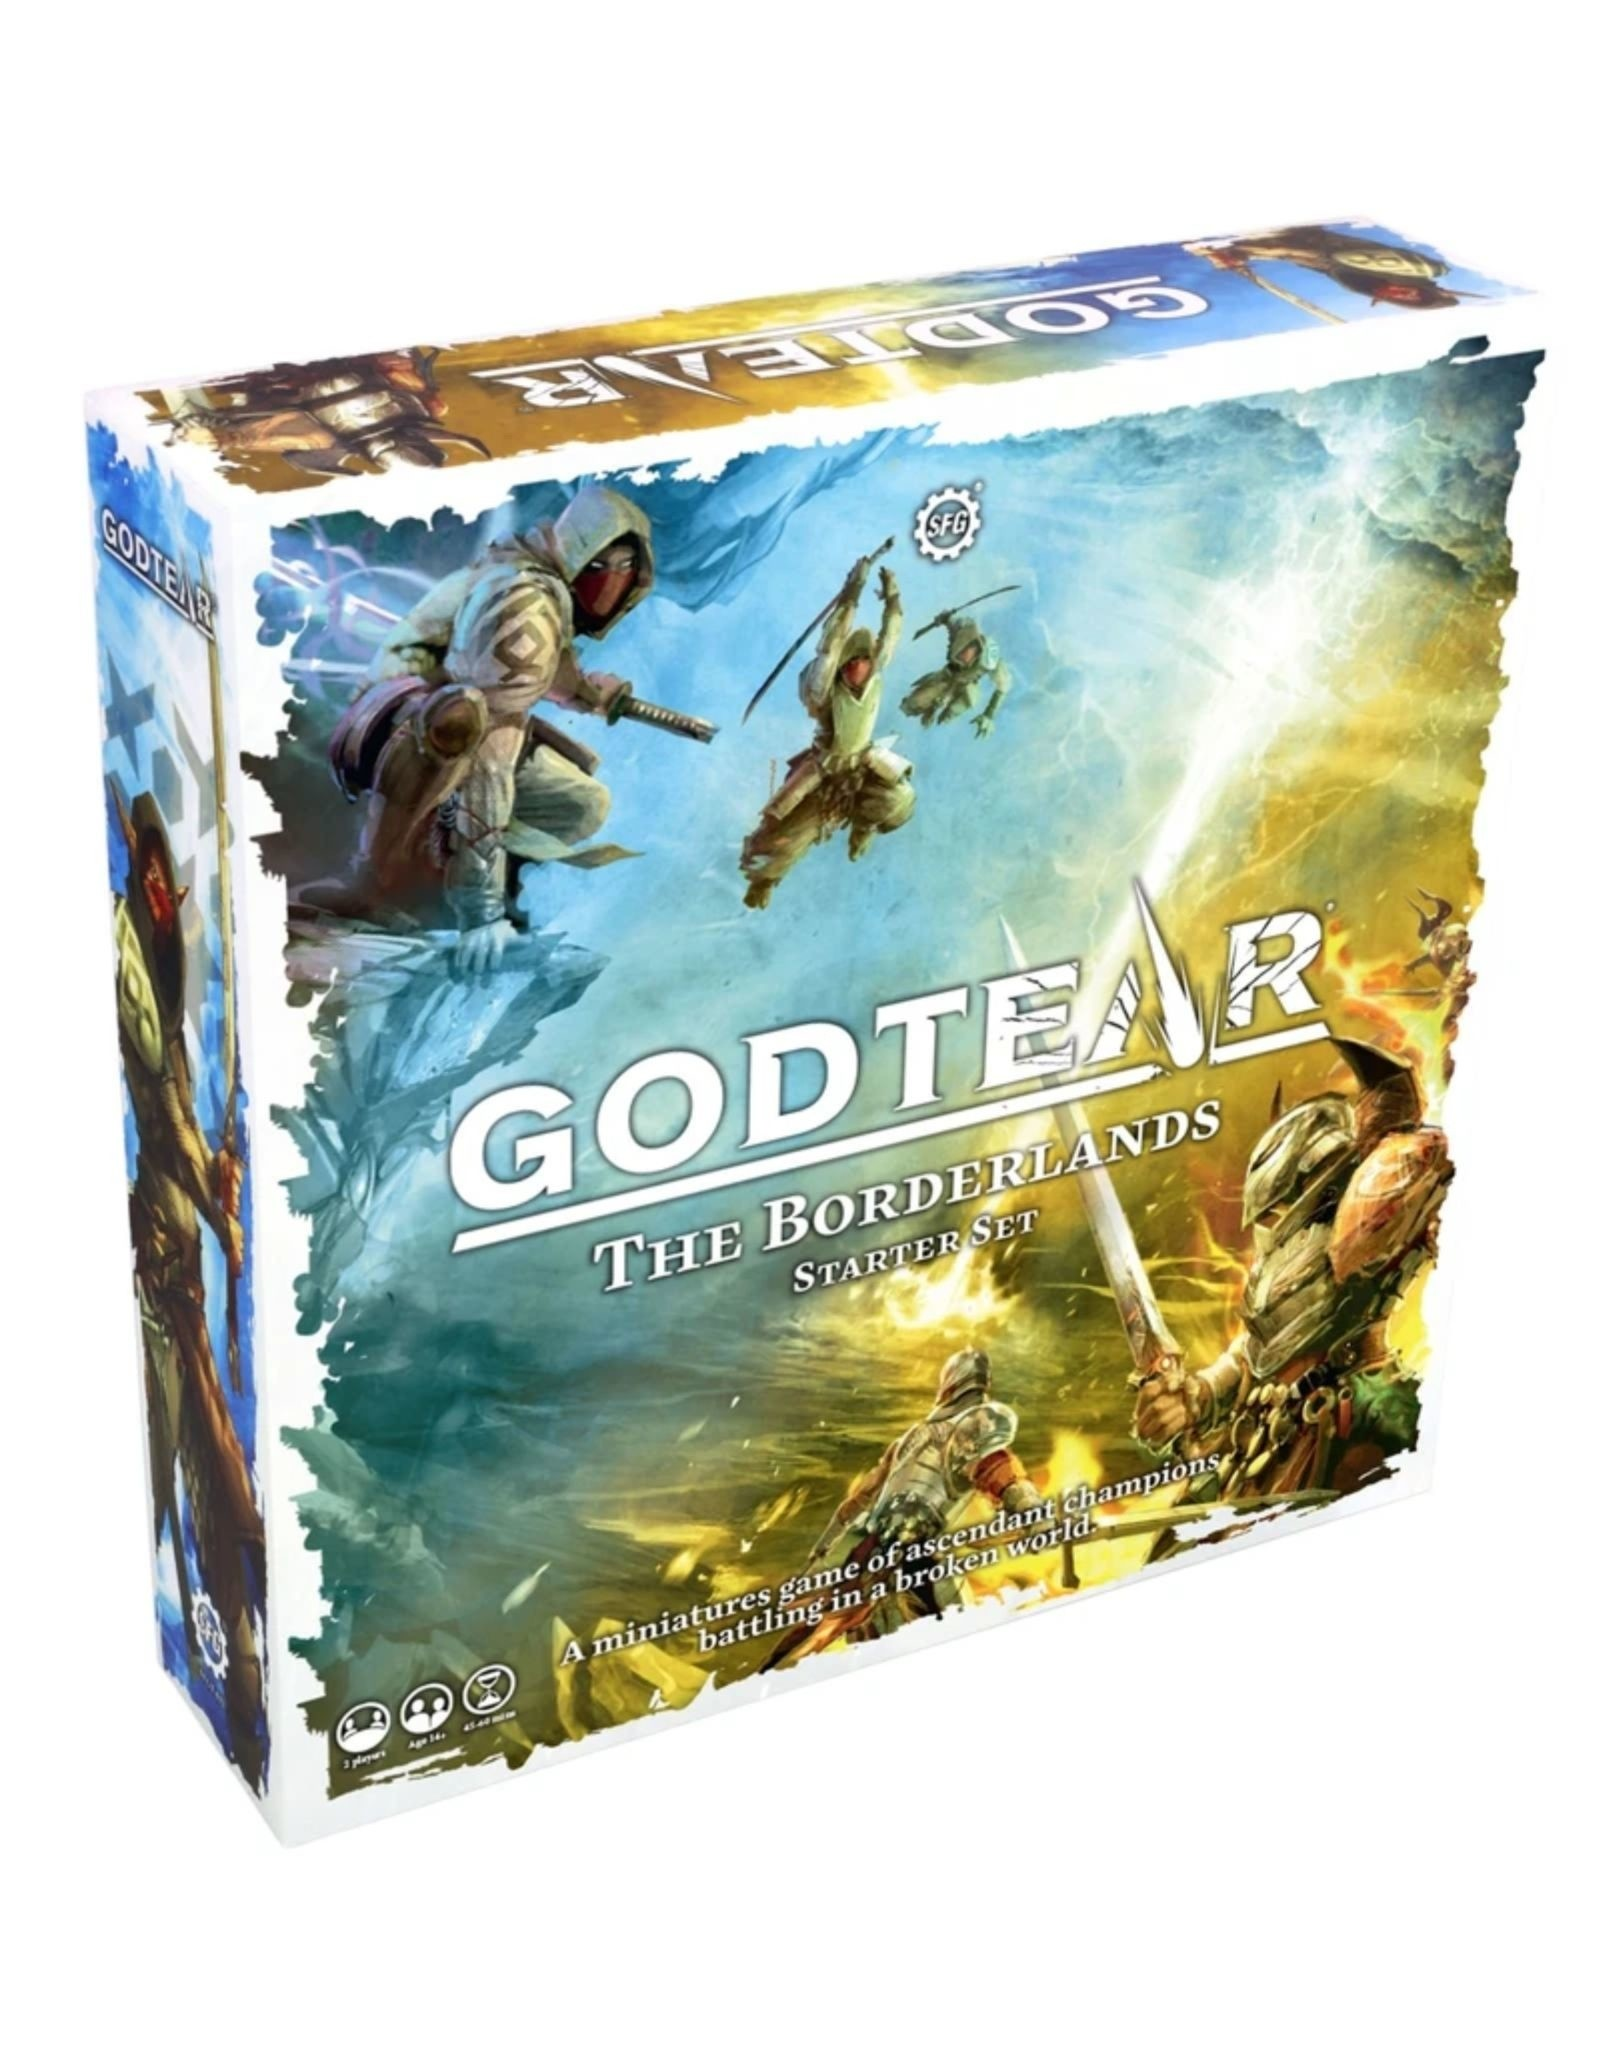 Godtear Godtear: The Borderlands Starter